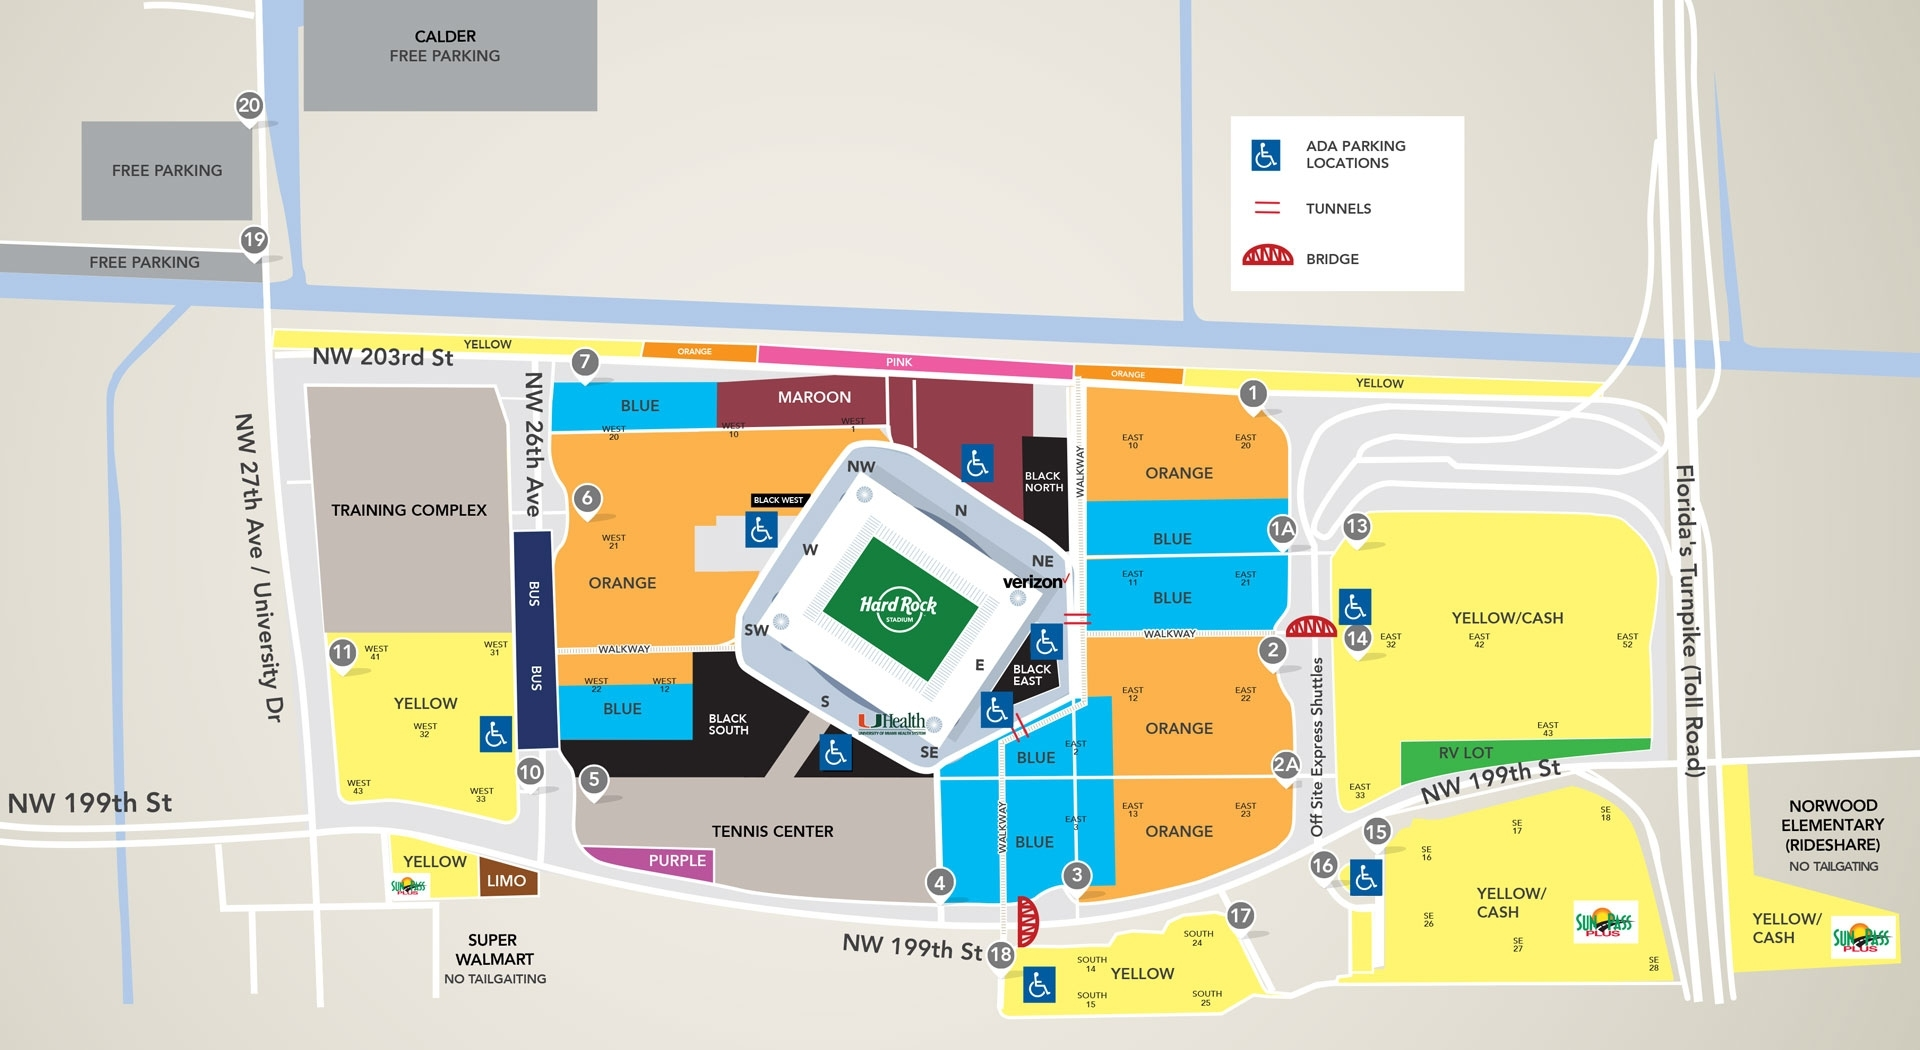 Best Hard Rock Stadium Parking From $25 (2020) Rates + Reviews intended for Hard Rock Stadium Miami Florida Map